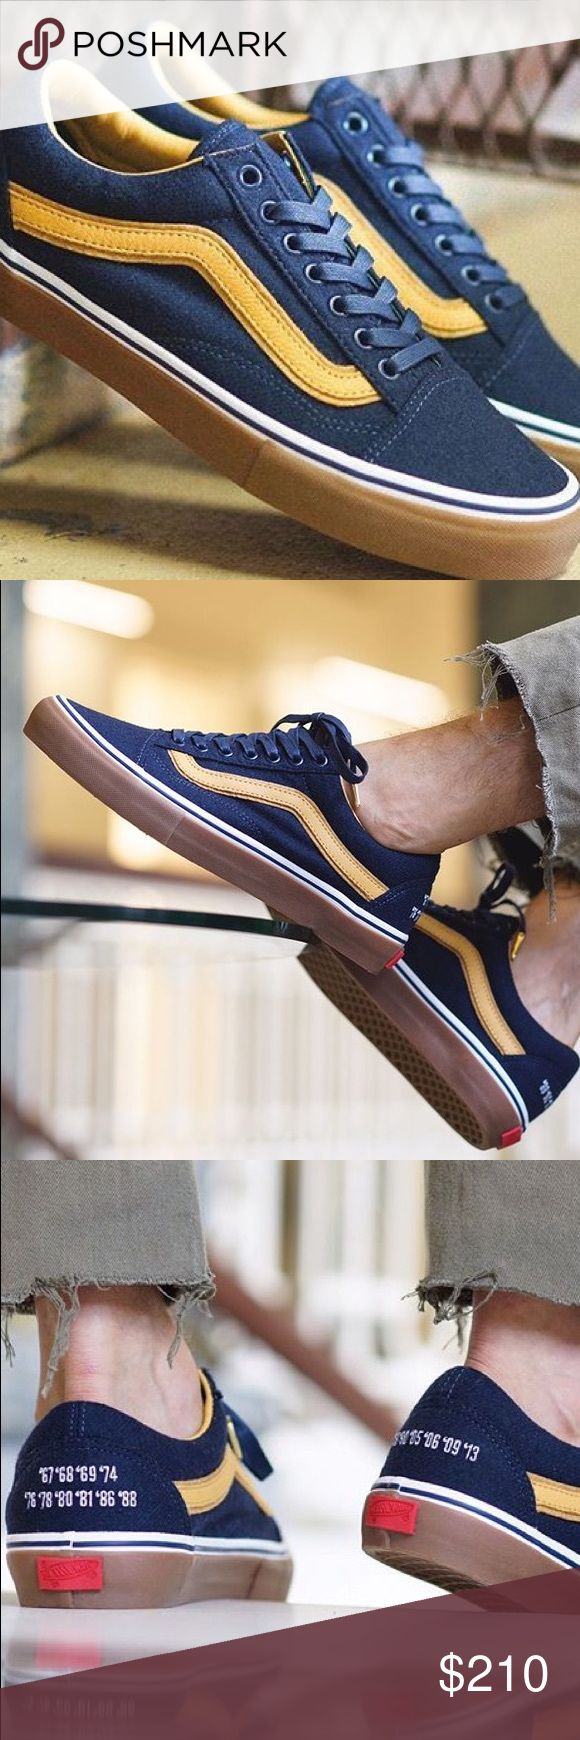 Vault By Vans Sole Classics Old School LX St. Palladius High School Irishmen Vault By Vans Sole Classics Old School LX Dress Blues. Limited Edition Deadstock released 7.15.17. Brand new, in box. 100% Authentic. Final Sale. Ships next business day. Vans Shoes Sneakers